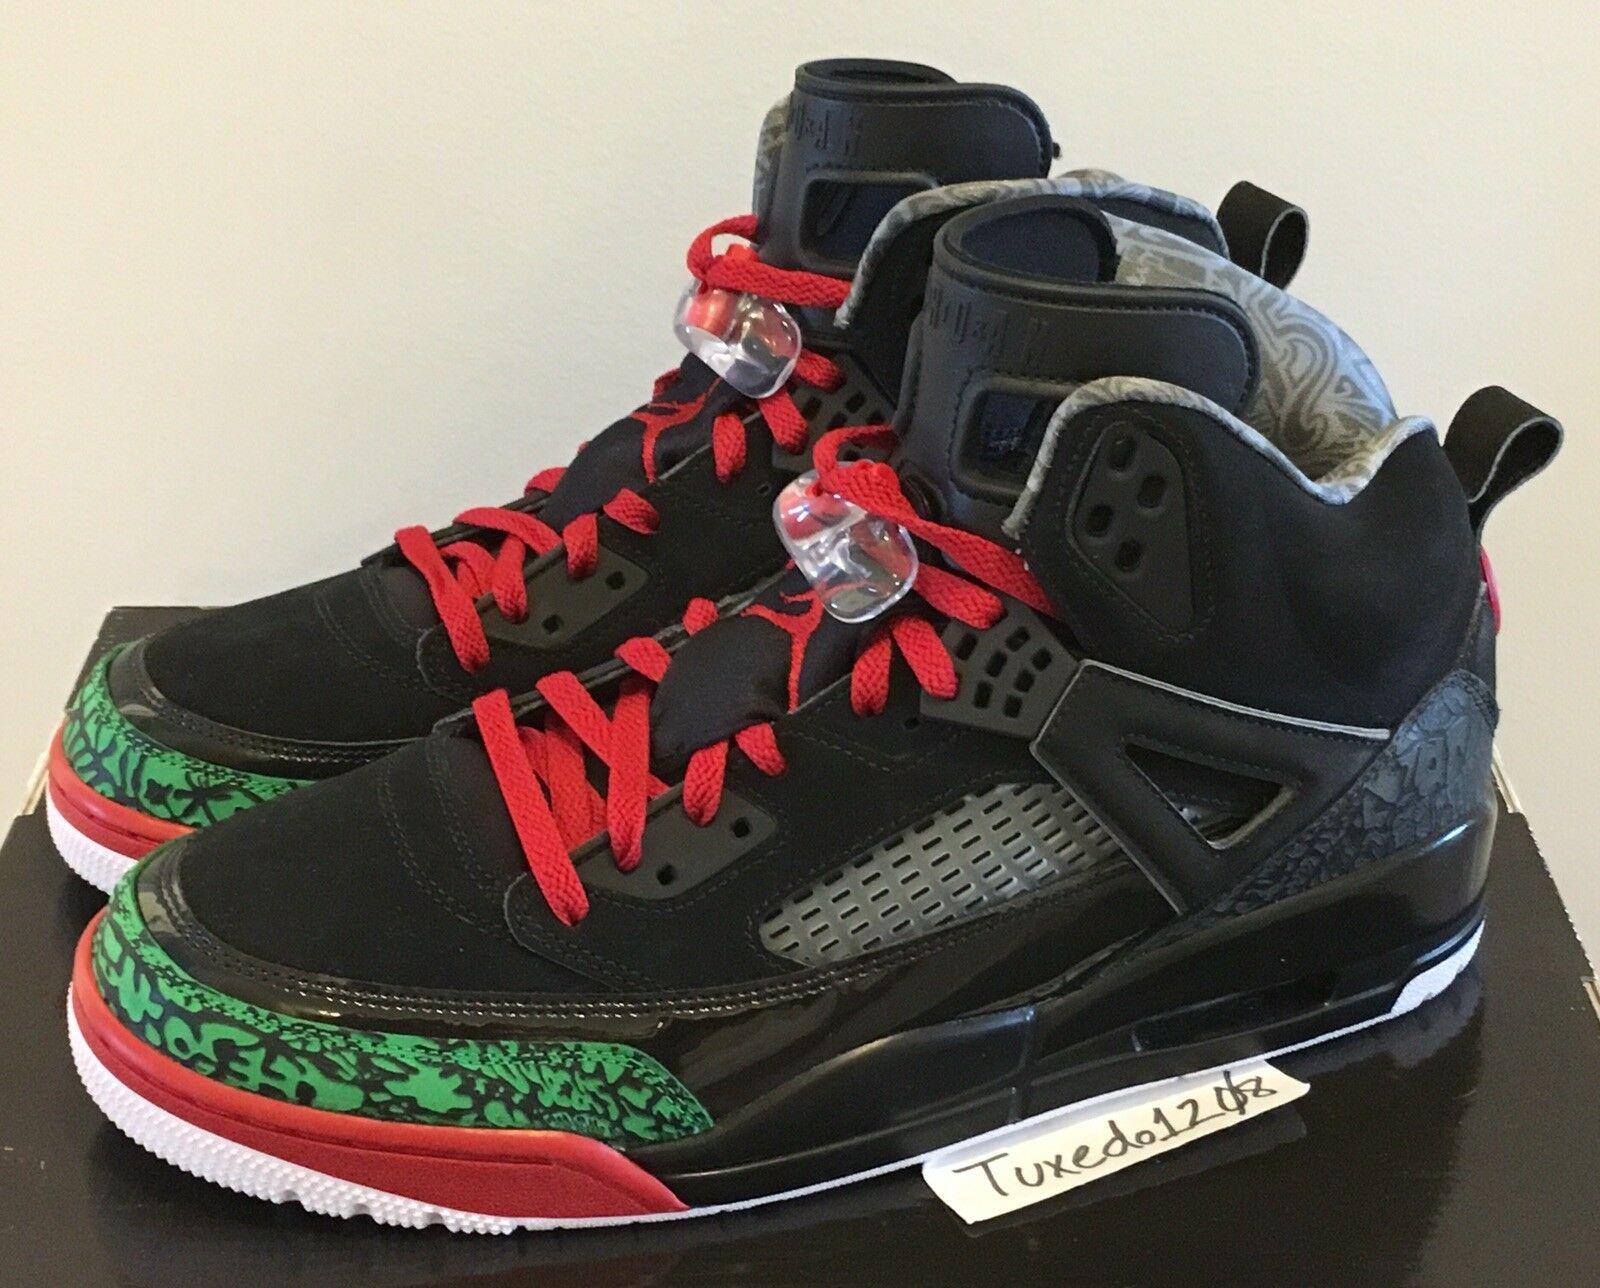 DS Nike Air Jordan Spizike sz10.5 Black Poison Green mars off cactus 315371 026